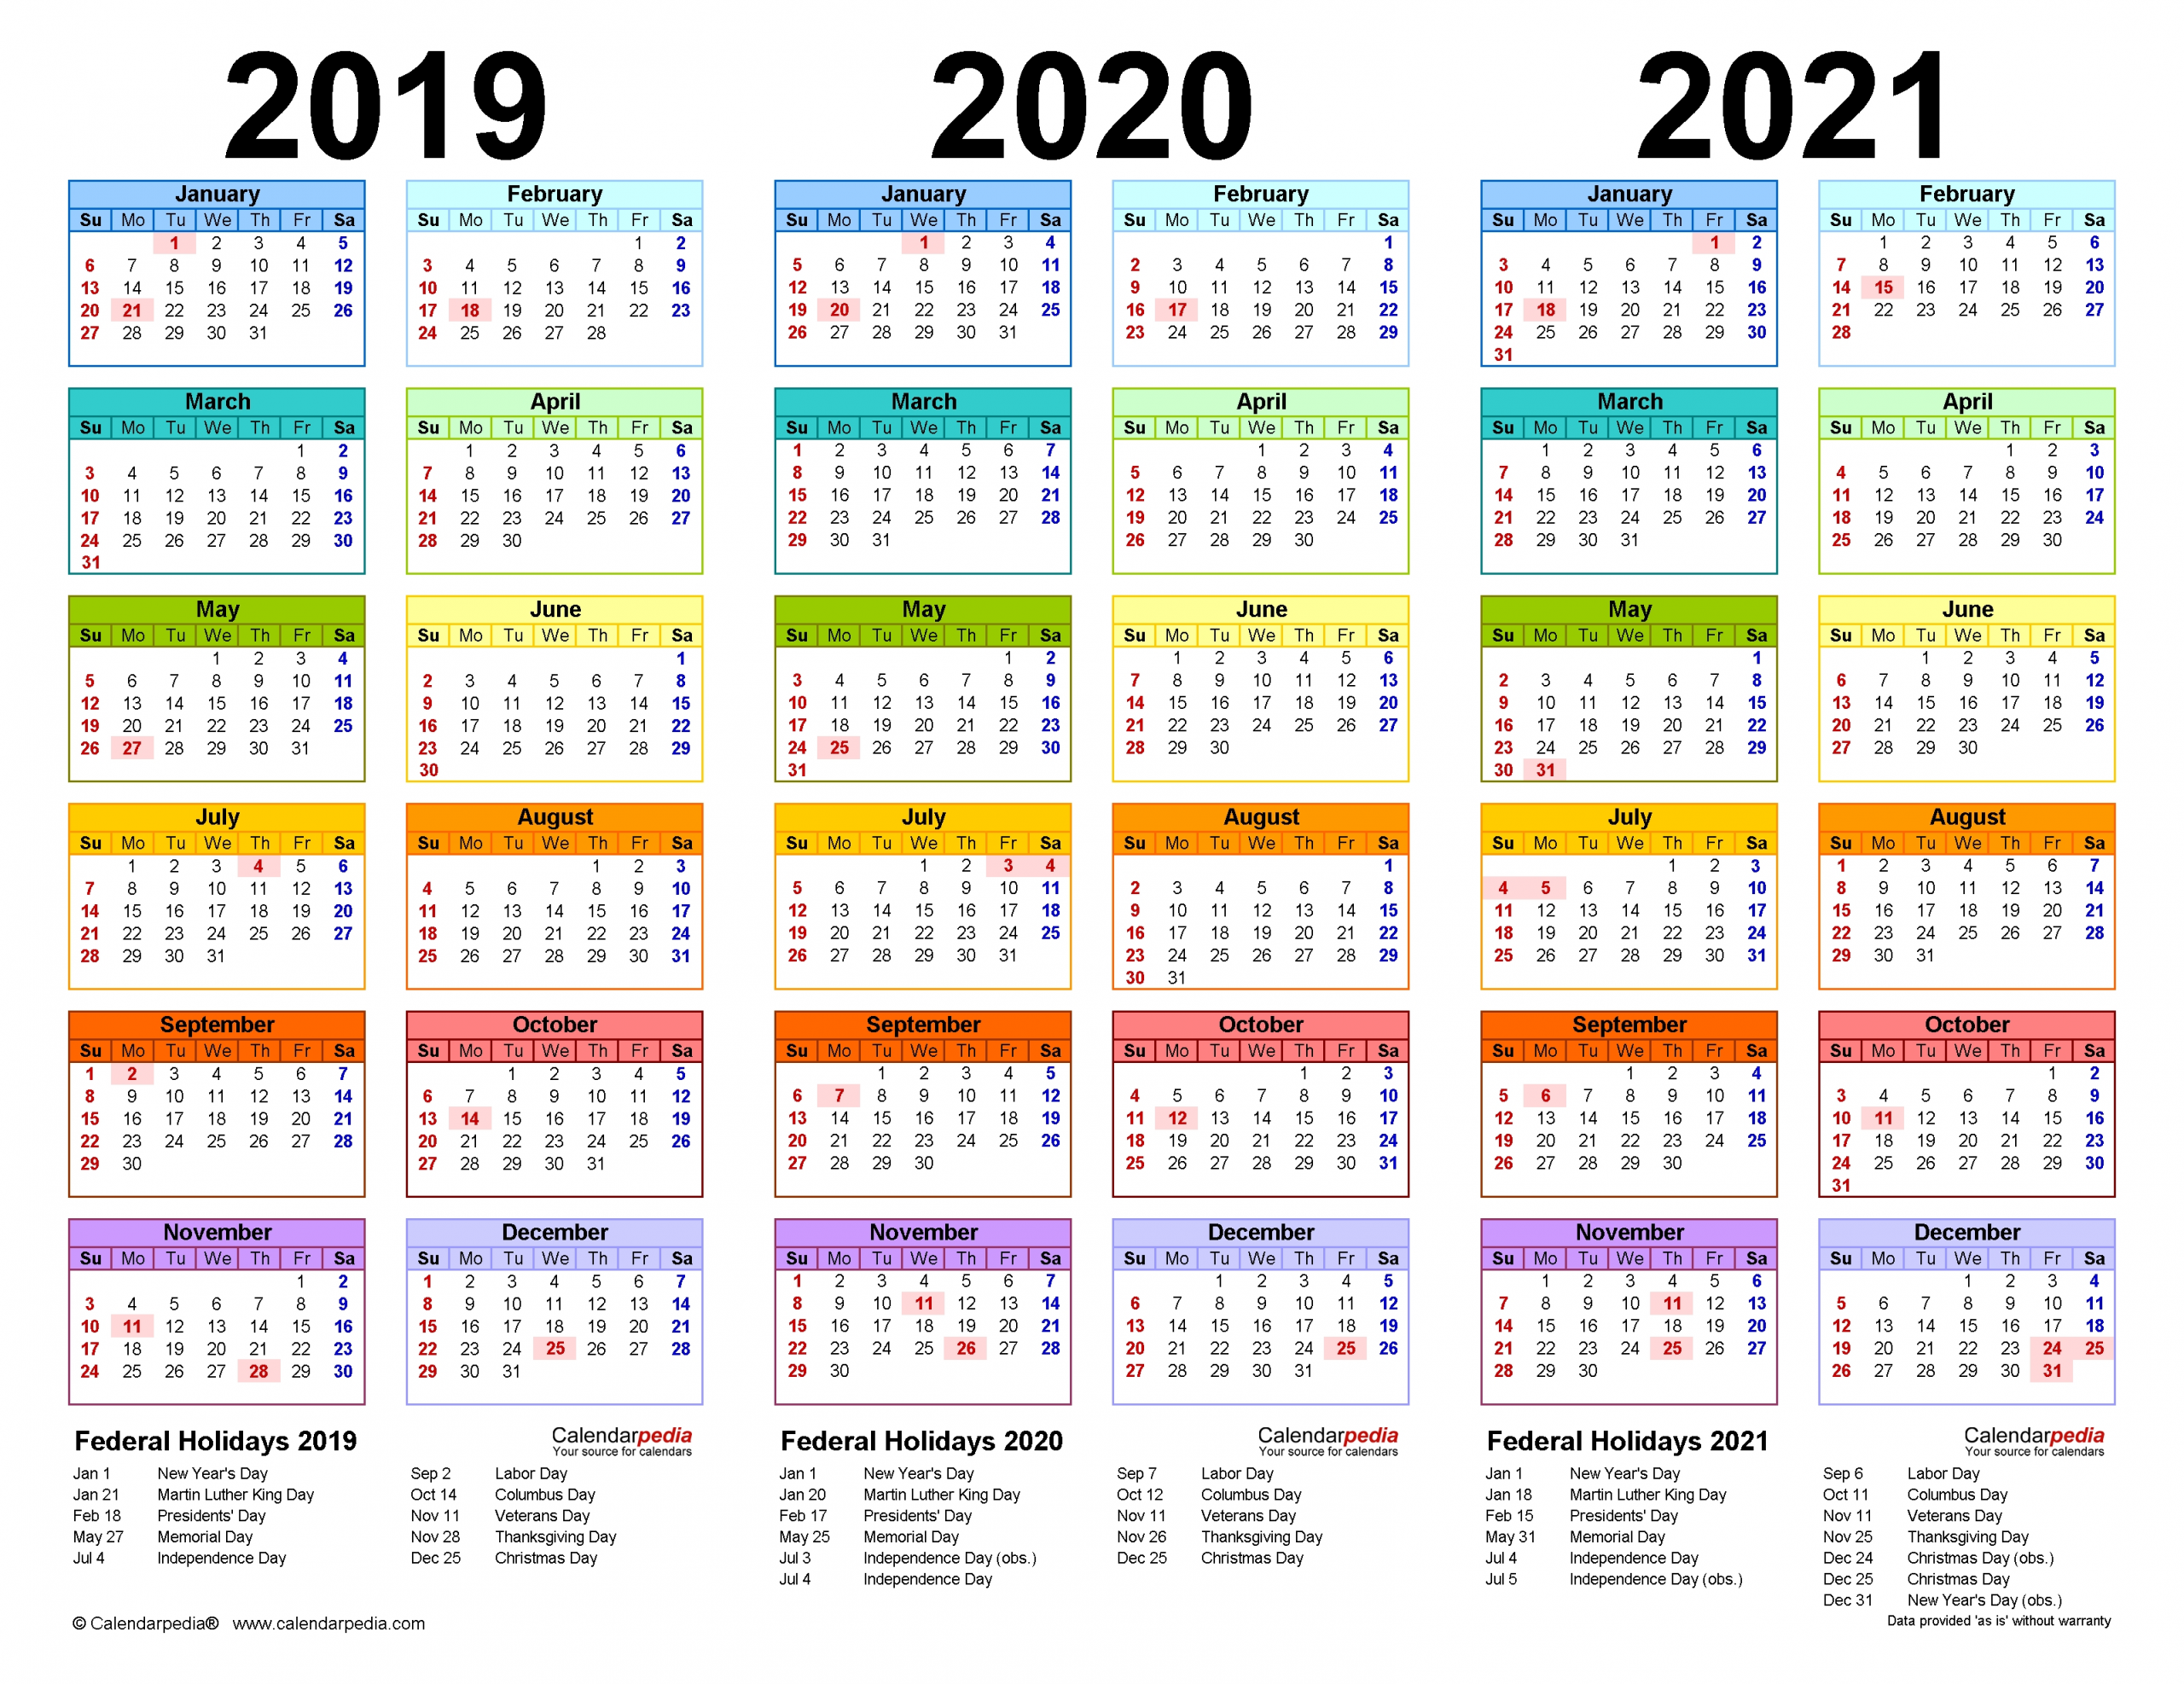 2021 And 2019 Holiday Calendar within Yearly Calendars 2021 To 2025